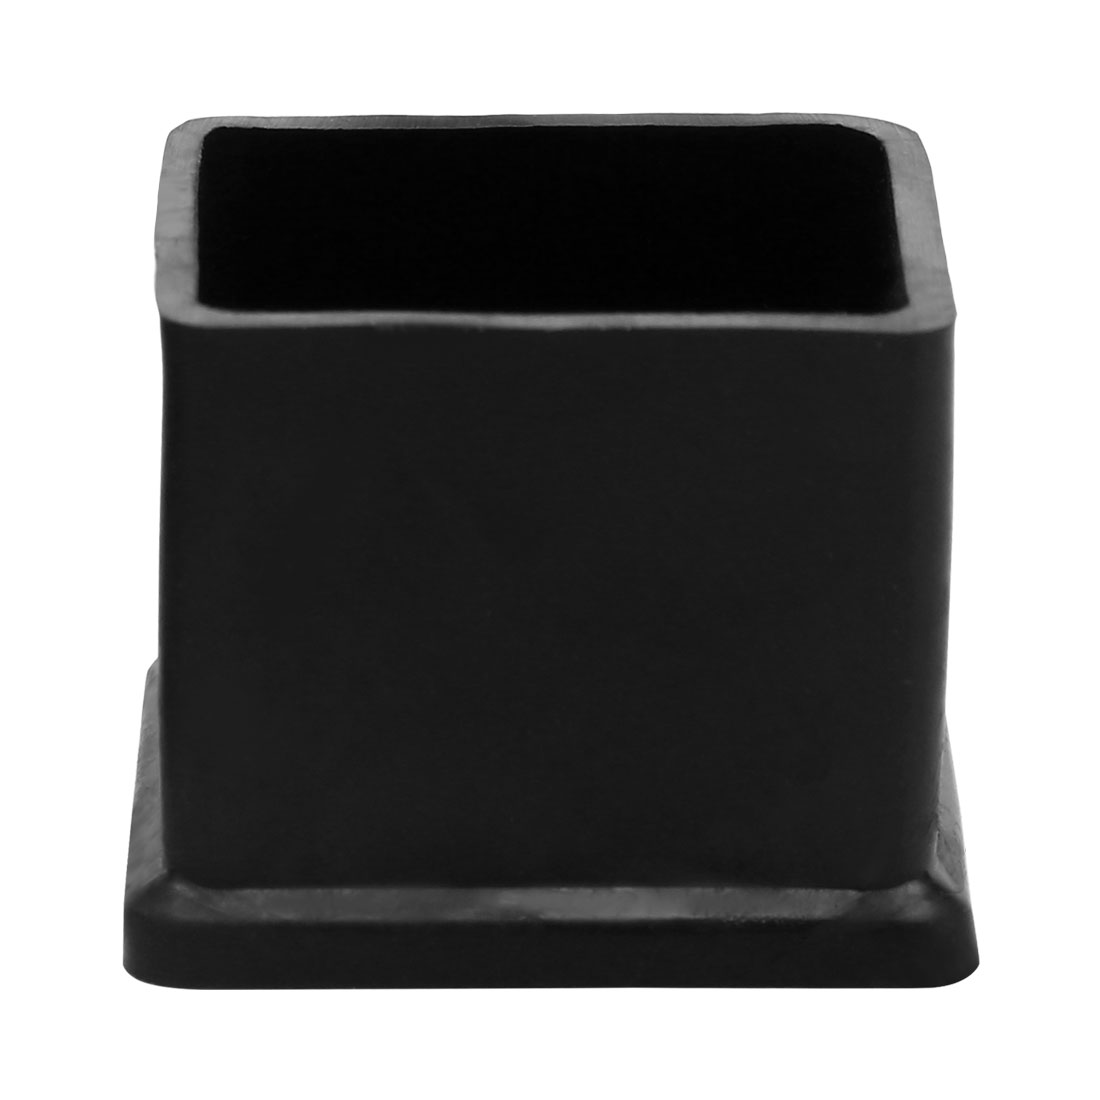 "Furniture Black Rubber 1 1/4"" x 1 1/4"" Square Leg Protector Table Foot Cover"